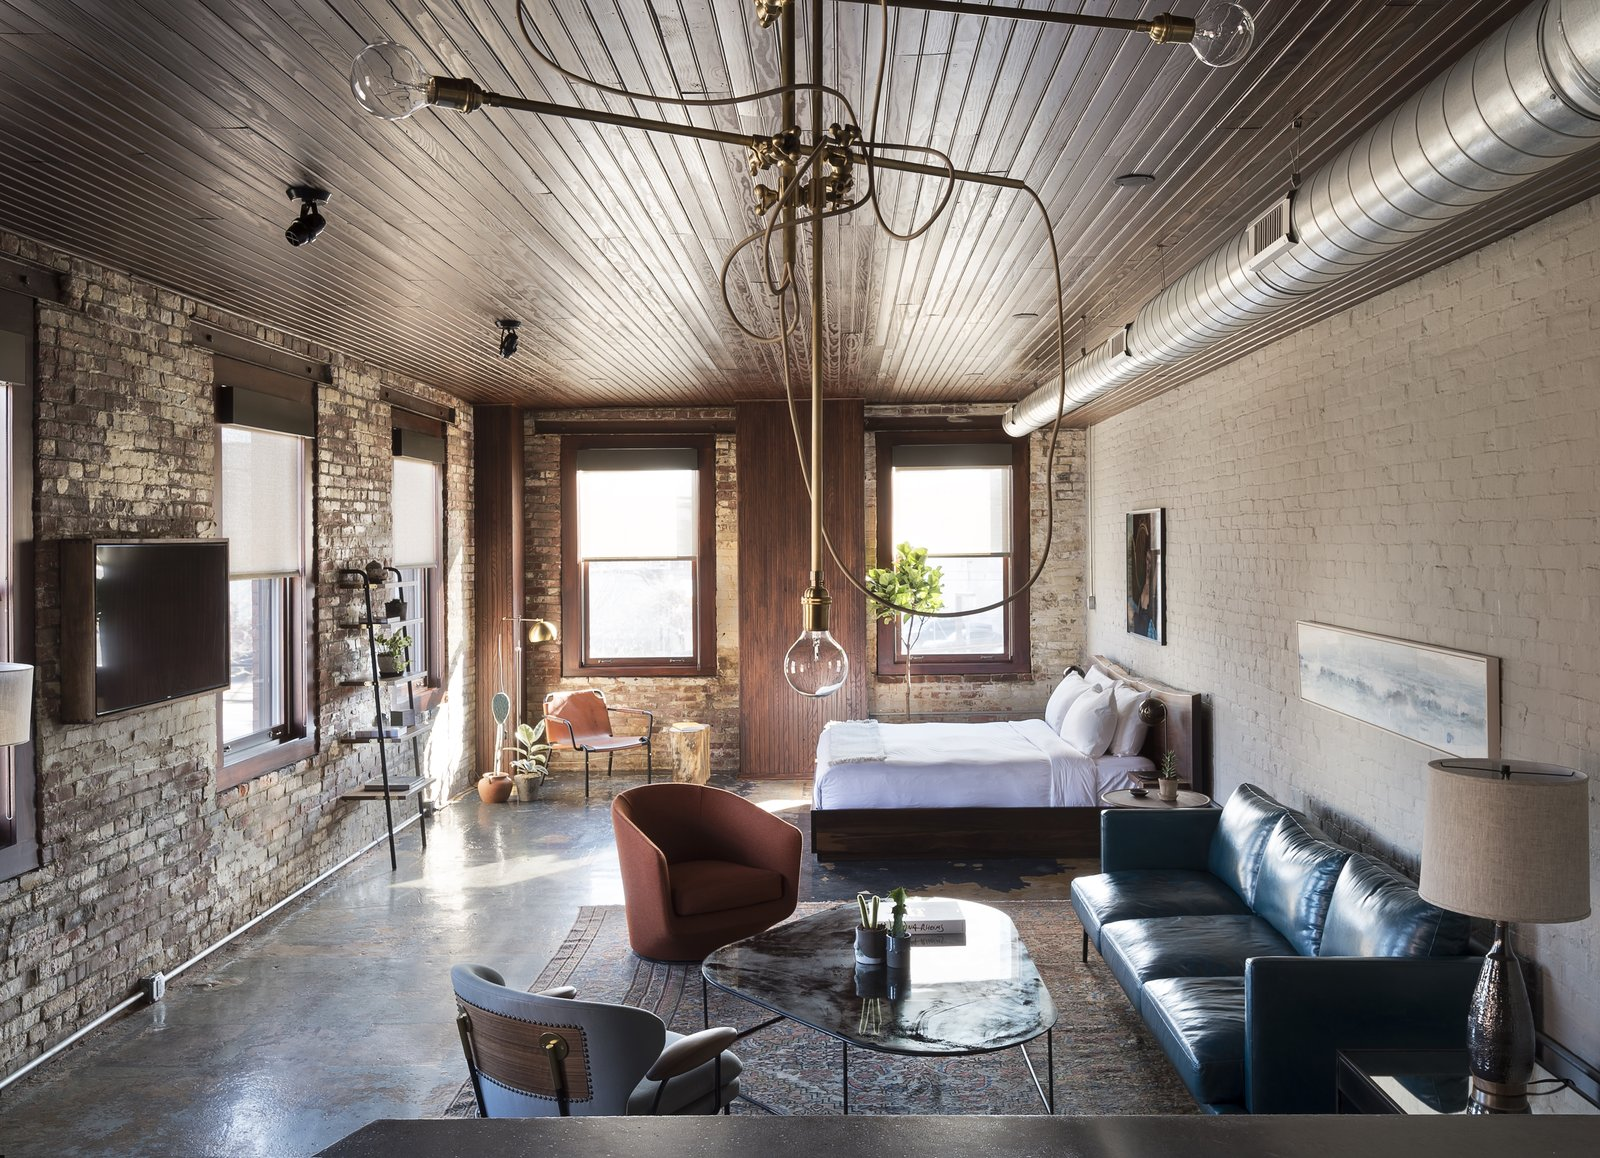 History and Modernity Meet in This Industrial Hotel and